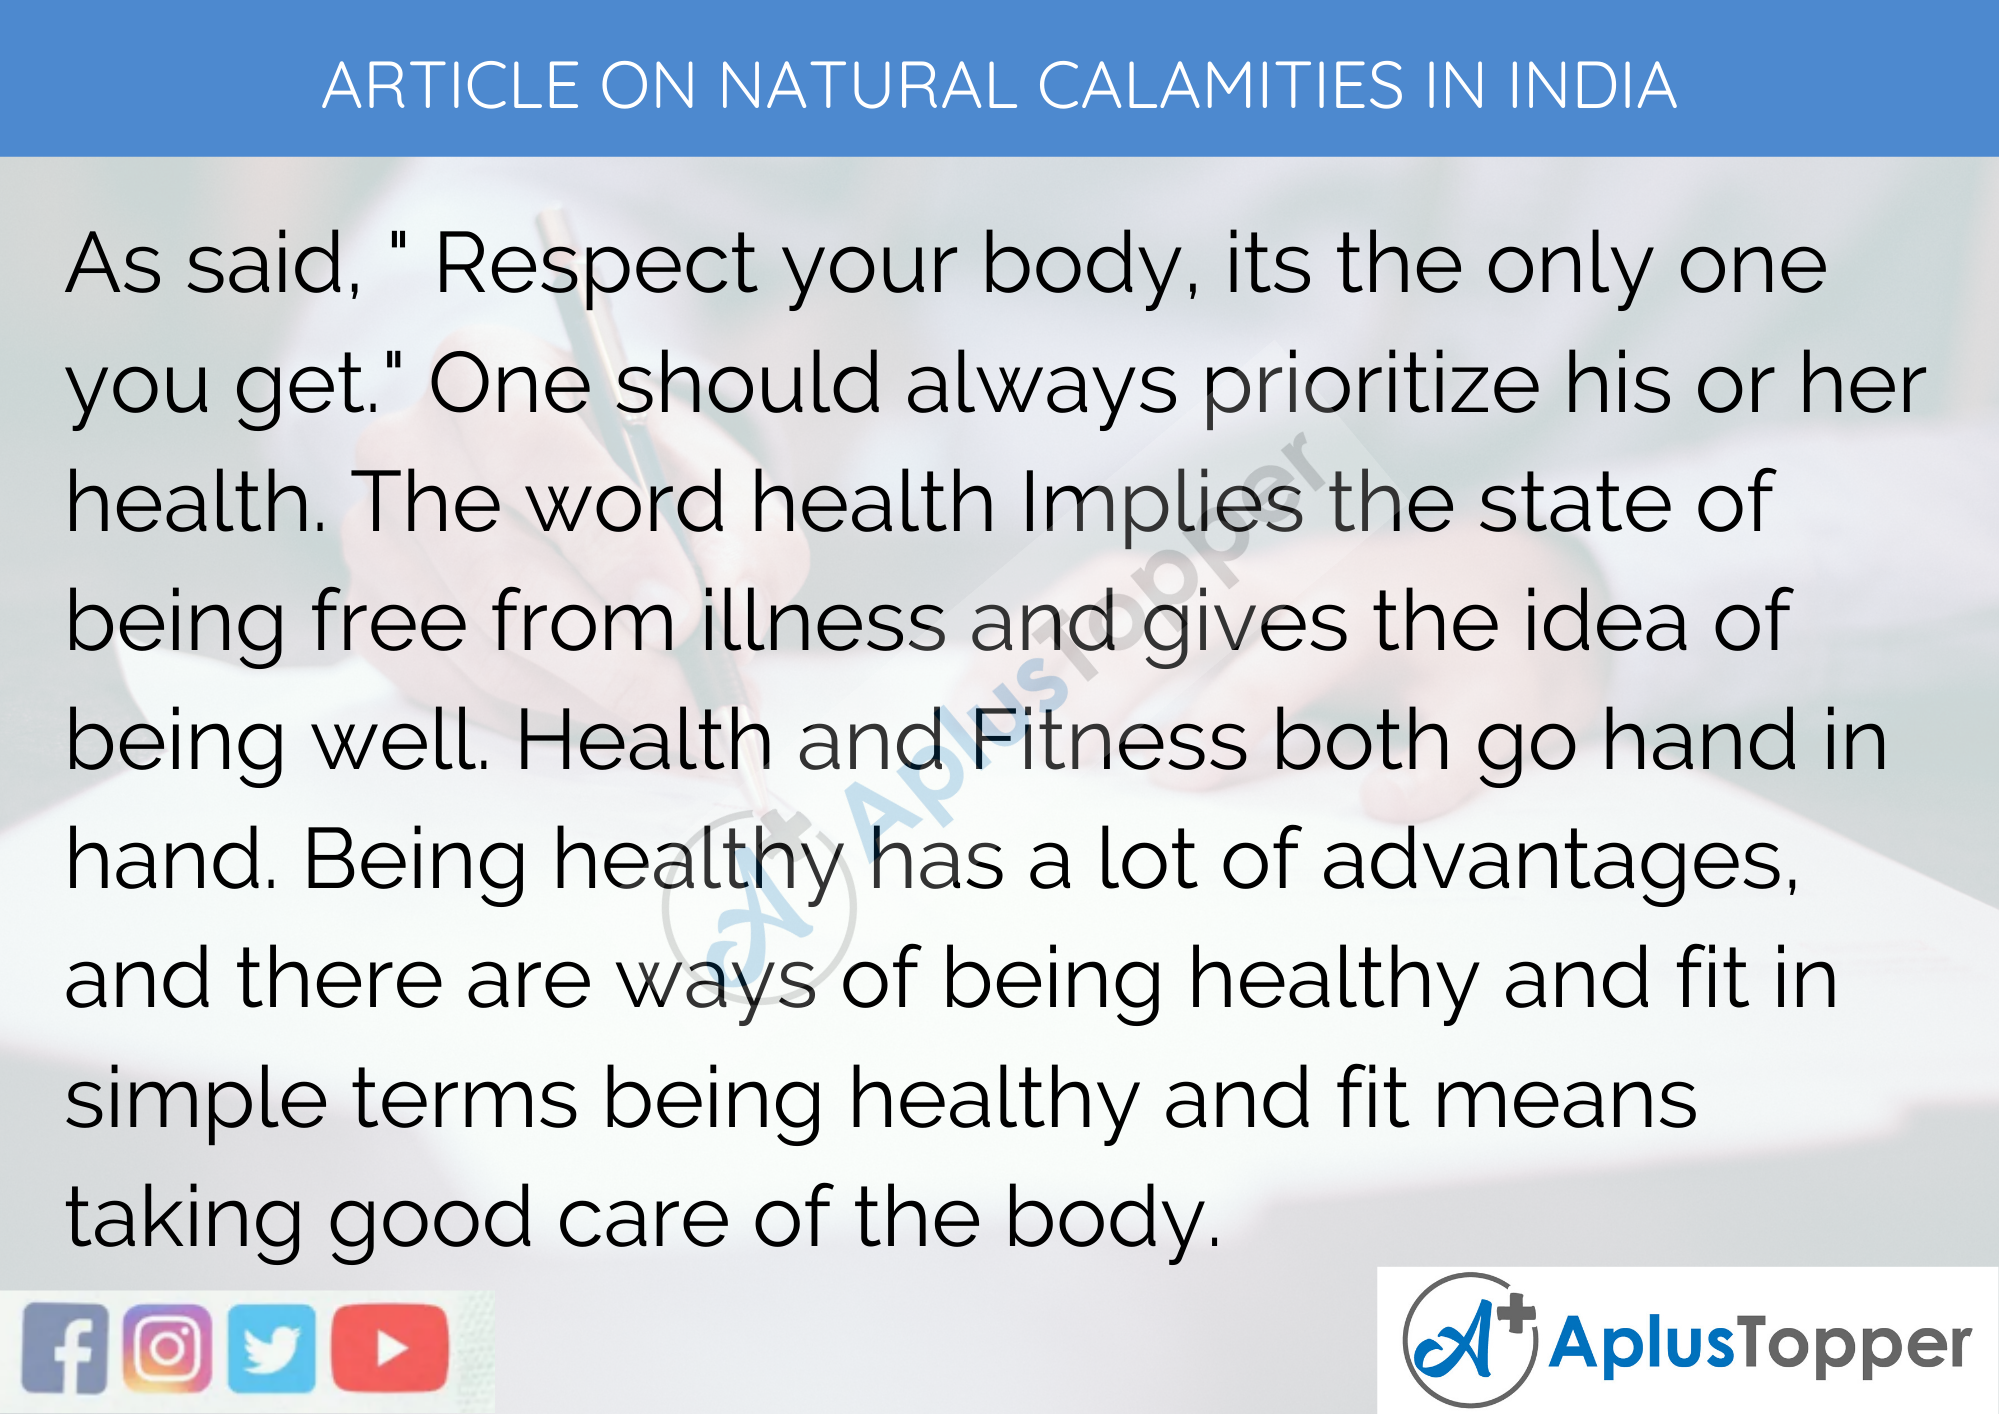 Long Article on Health and Fitness 600 Words in English